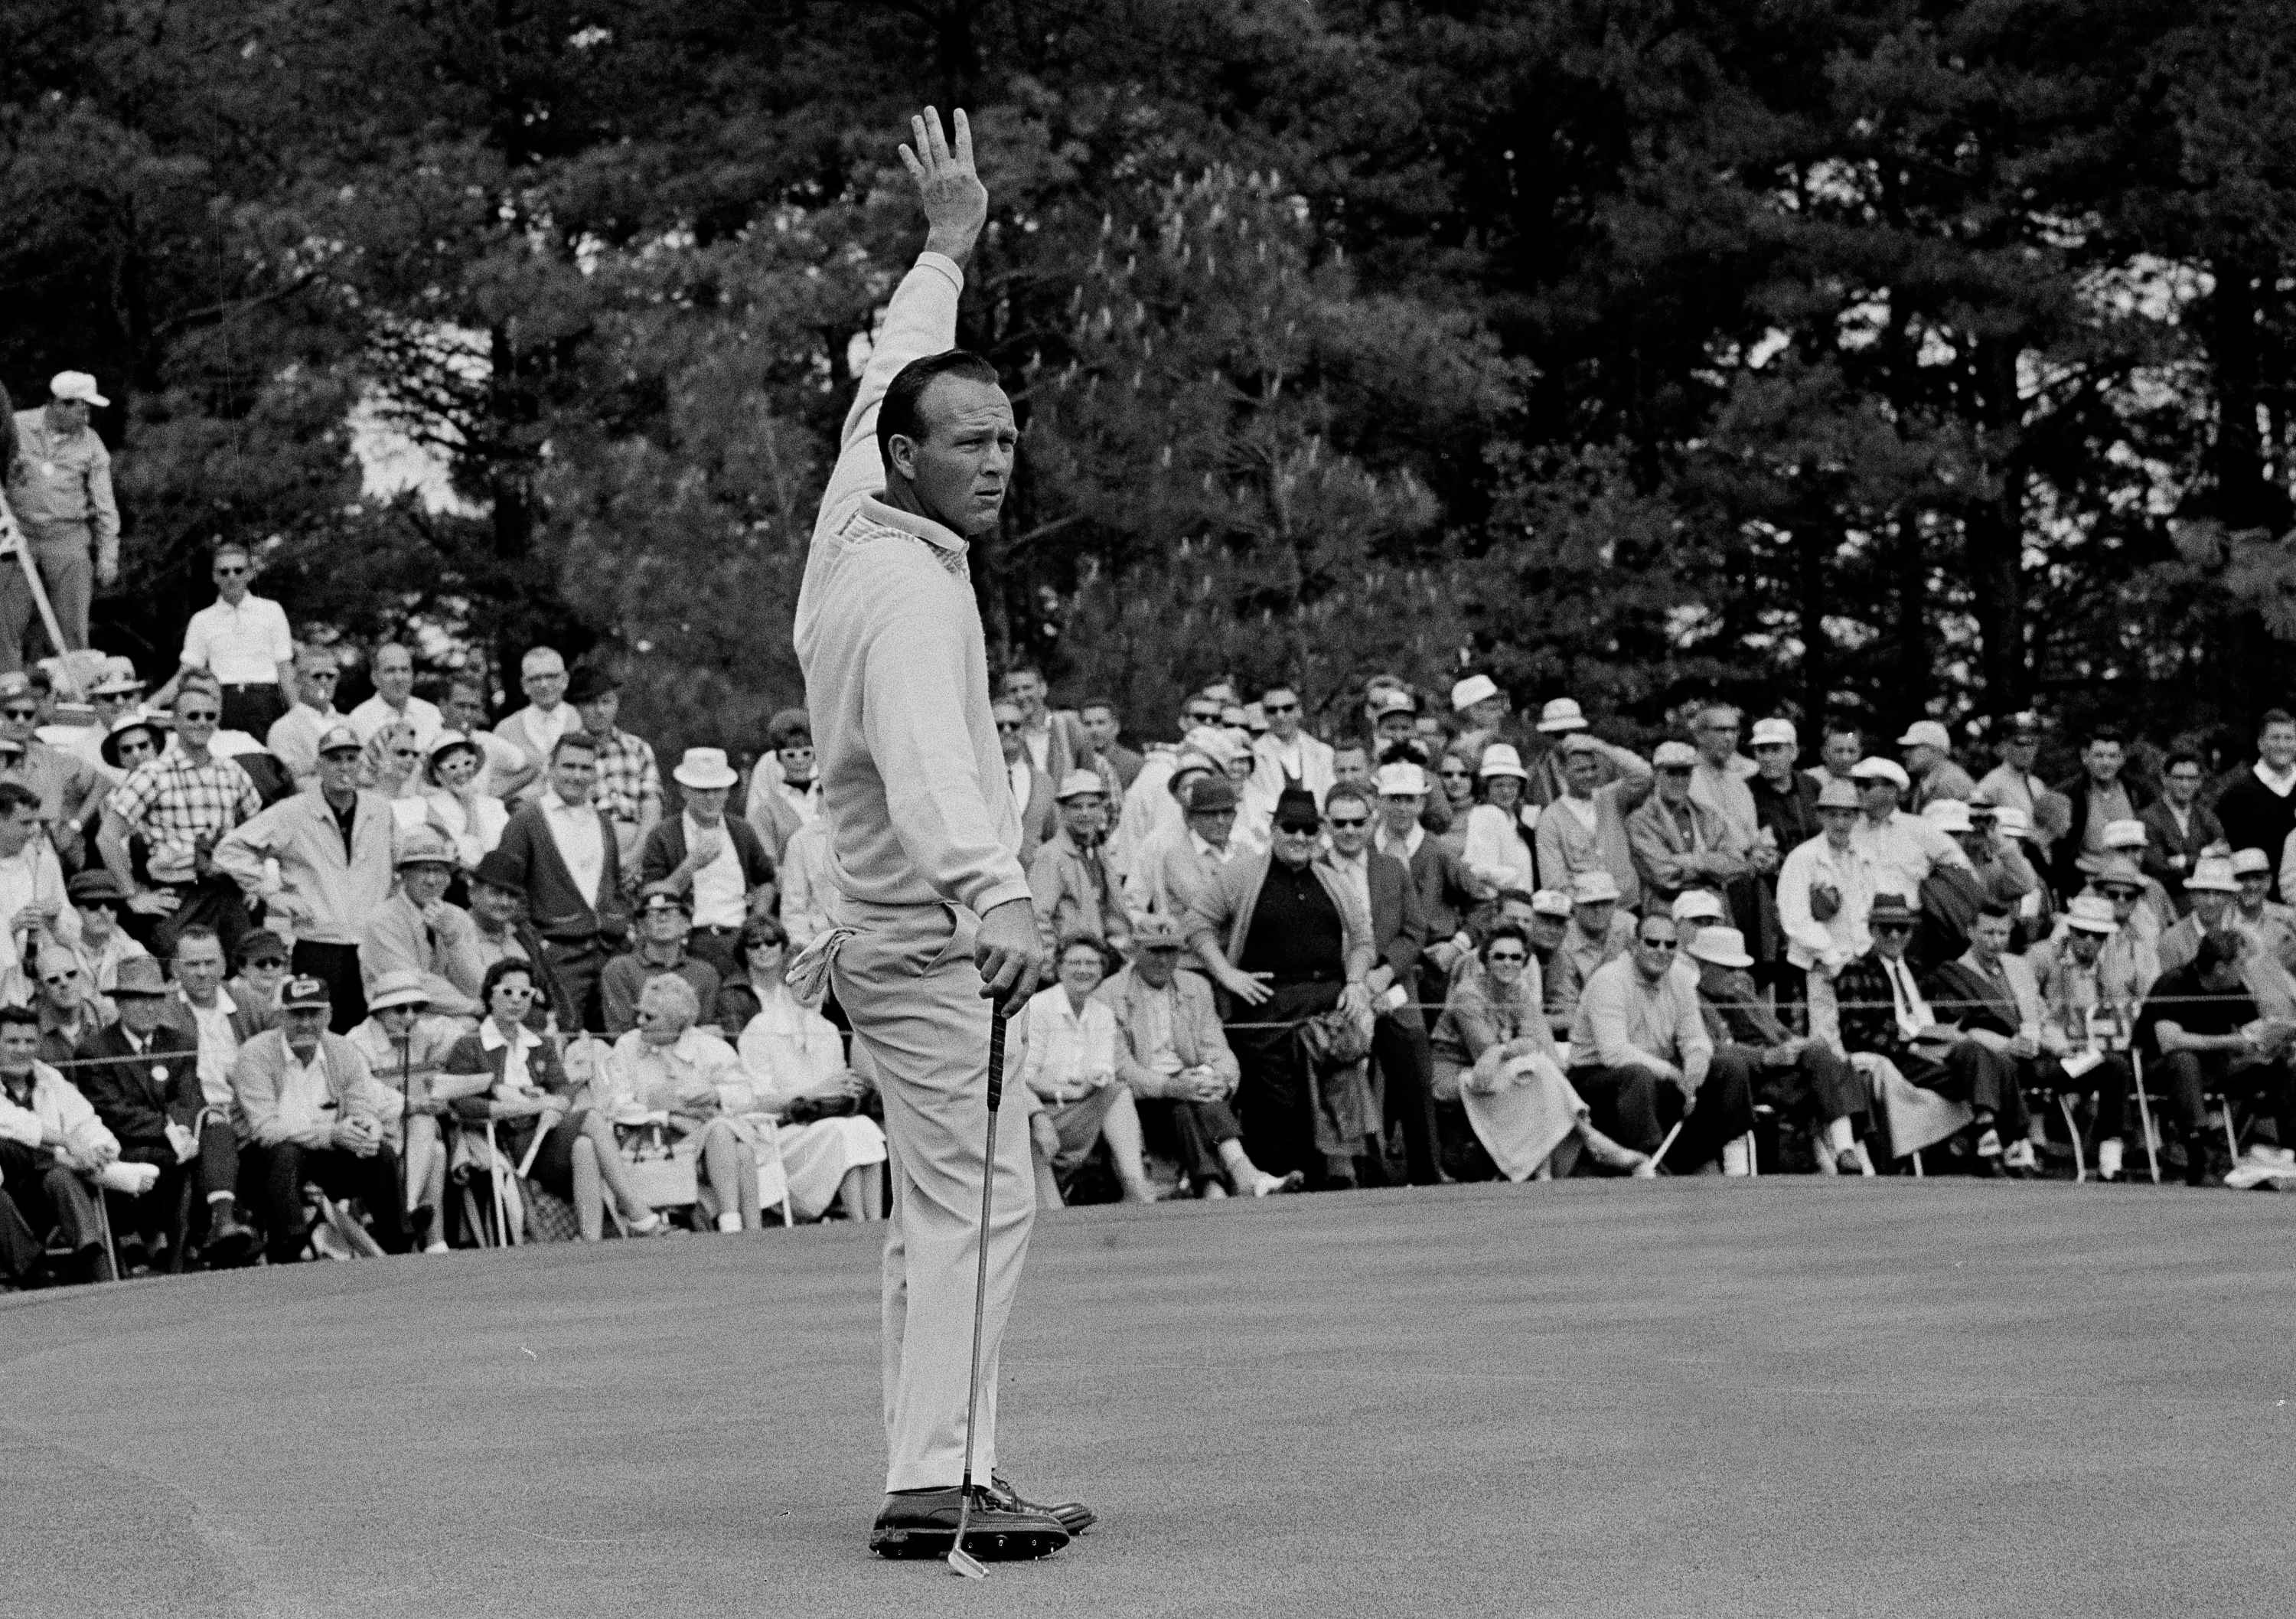 Arnold Palmer holds up his hand to quiet the crowd during the Masters Golf Tournament in Augusta, Ga. April 7, 1963.